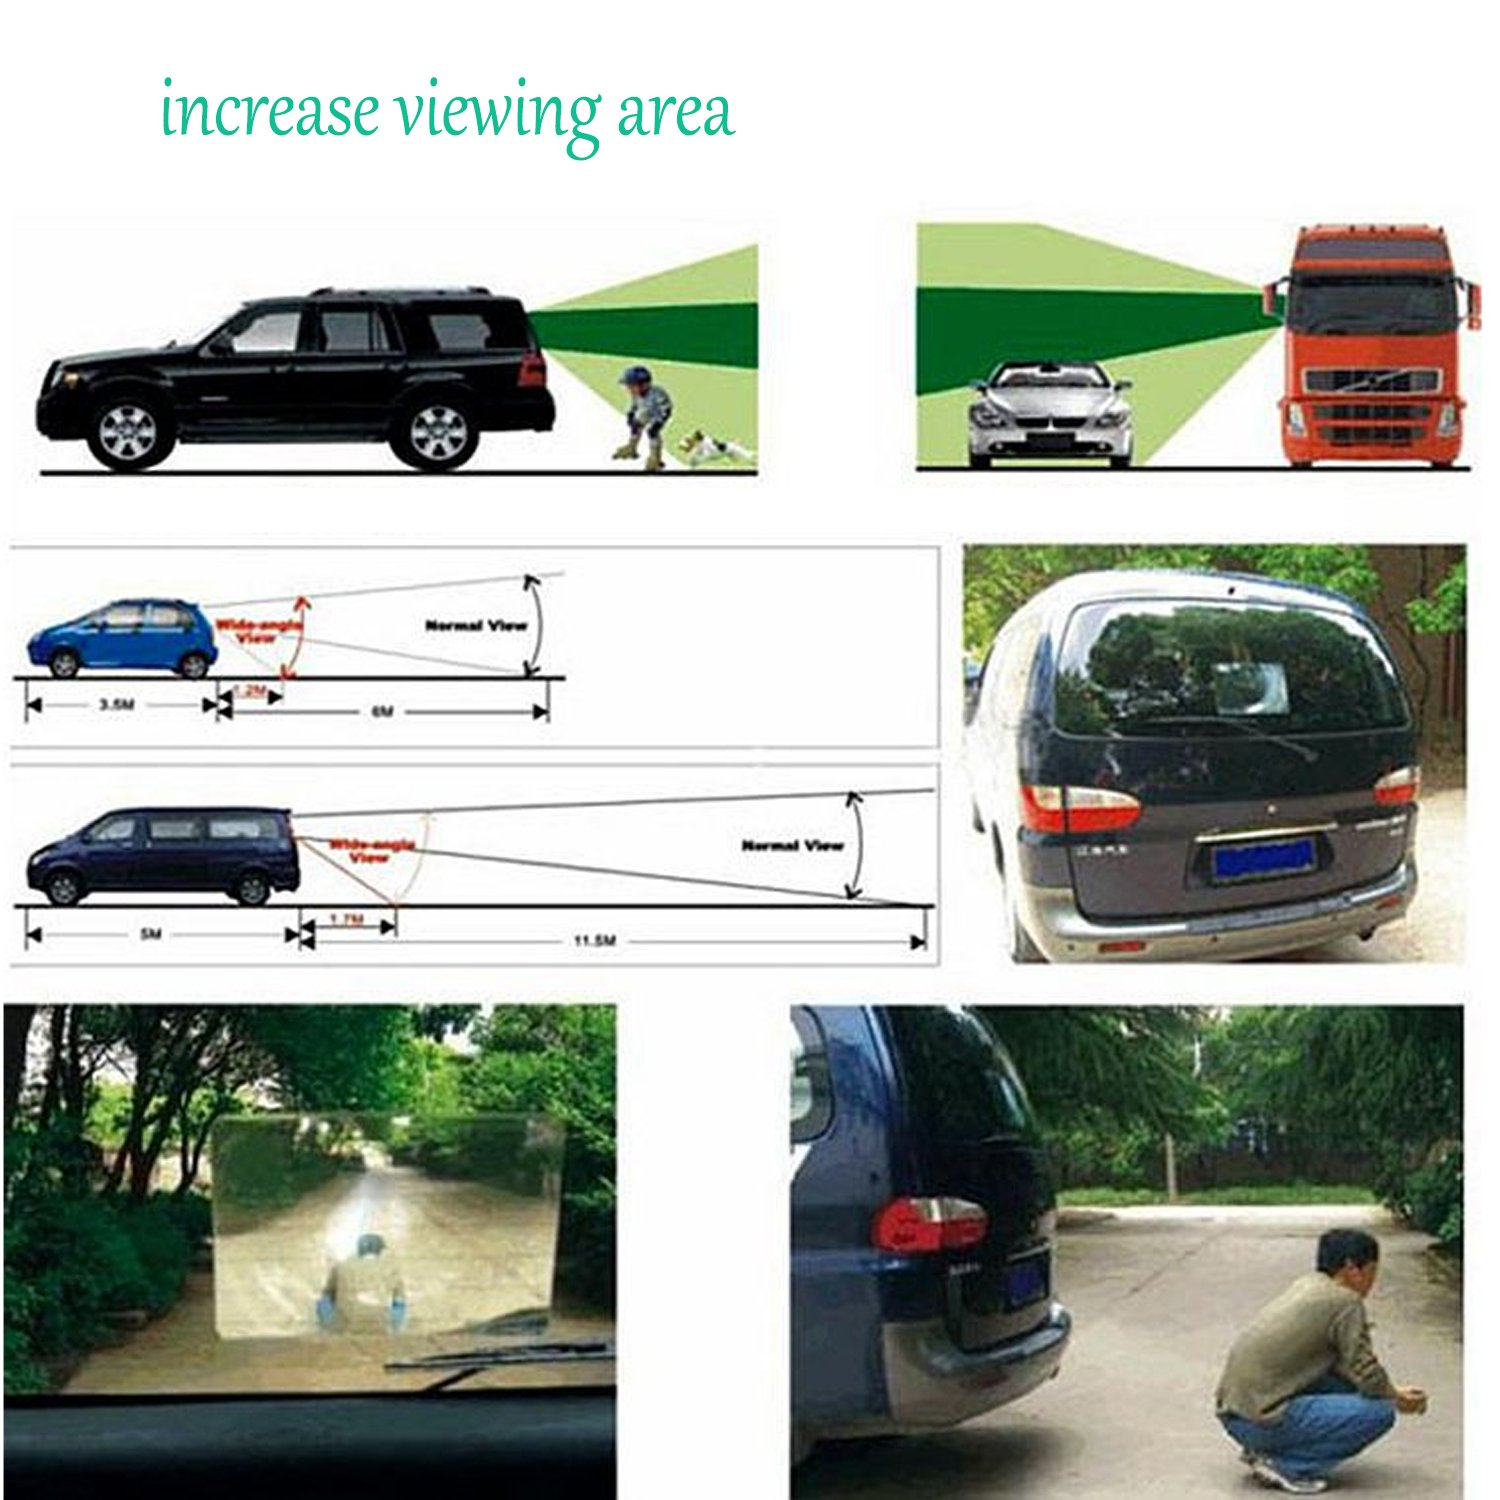 Clear Improves Safety Reduces Blind Spots Behavetw Car Fresnel Lens Rear View Mirror Wide Angle View Parking Reversing Stickers for Your Cars Rear View Back Window